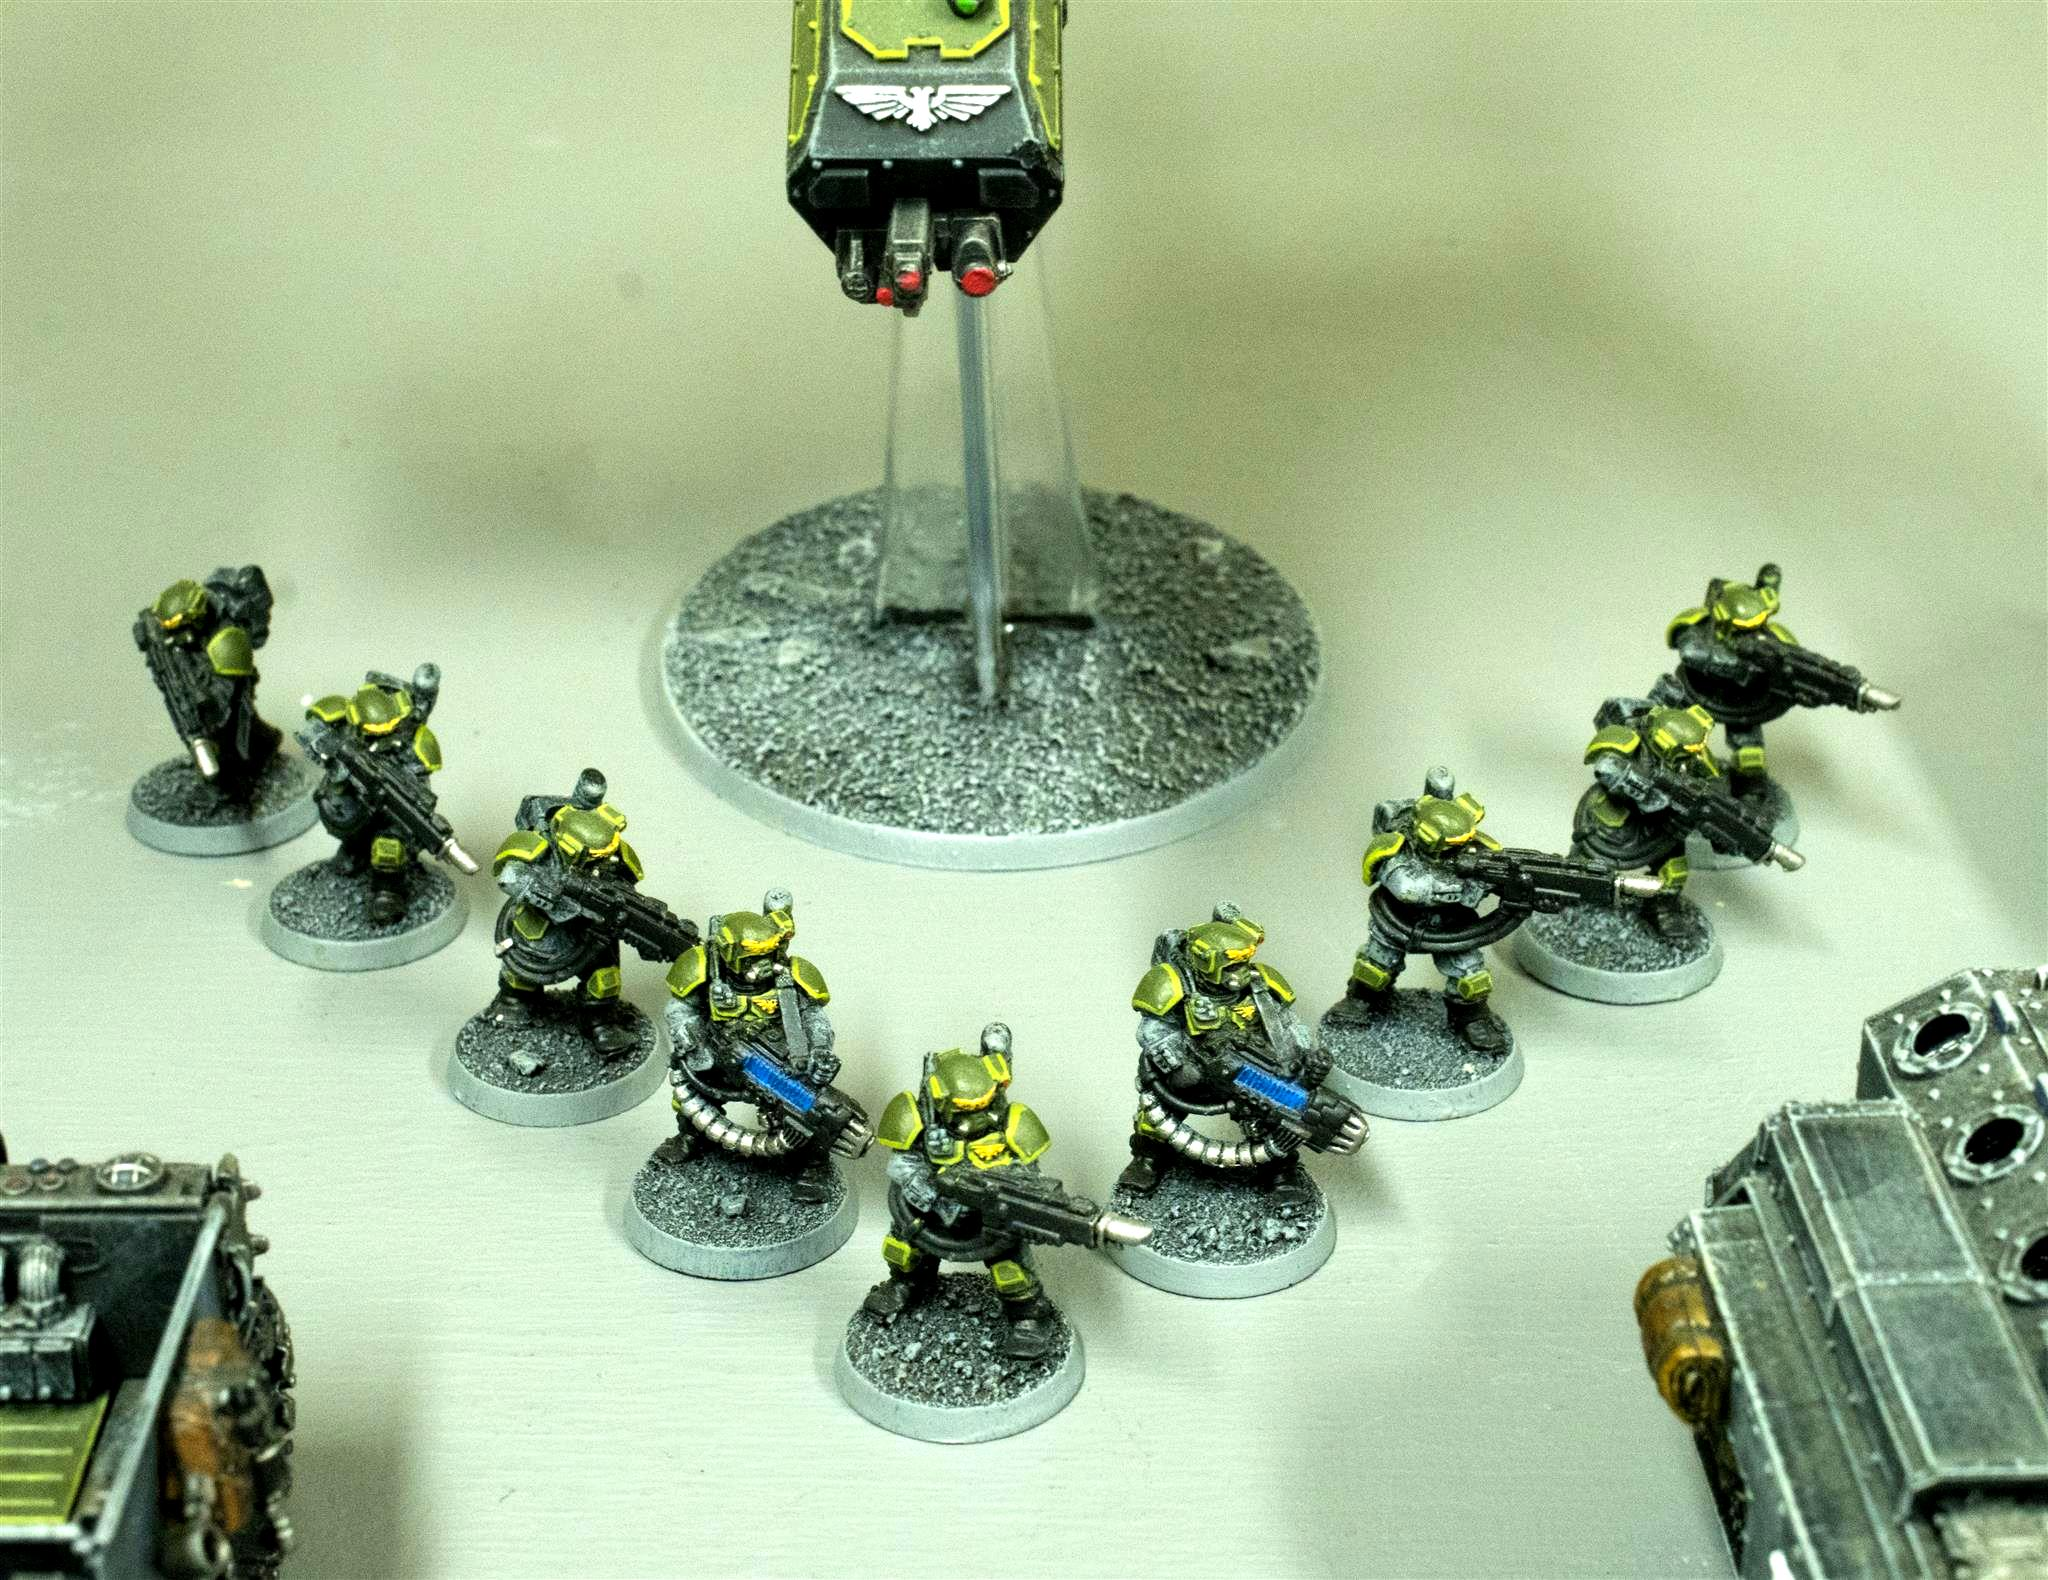 317th Sathanas Hoplites, Astra Militarum, Carapace Armour, Guard, Imp Guard, Imperial Guard, Kasrkin, Scions, Storm Troopers